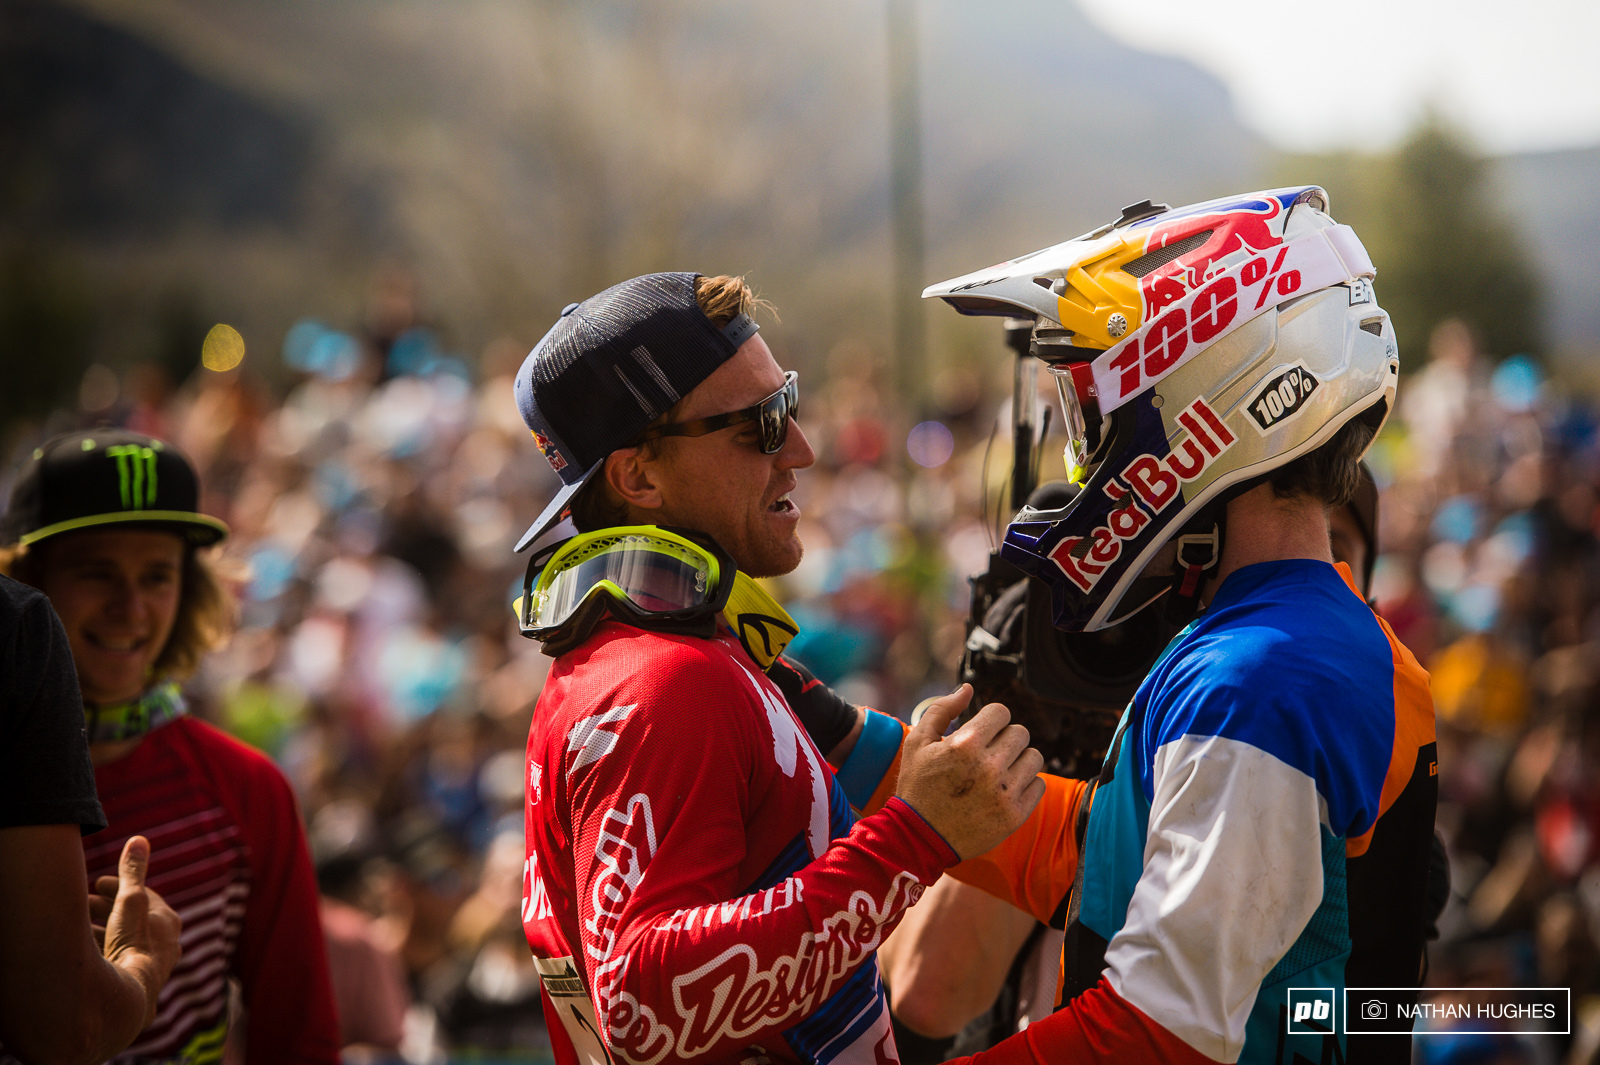 Bruni congratulates Gwin on one unbelievable ride in front of the packed grandstand of downhill fans.